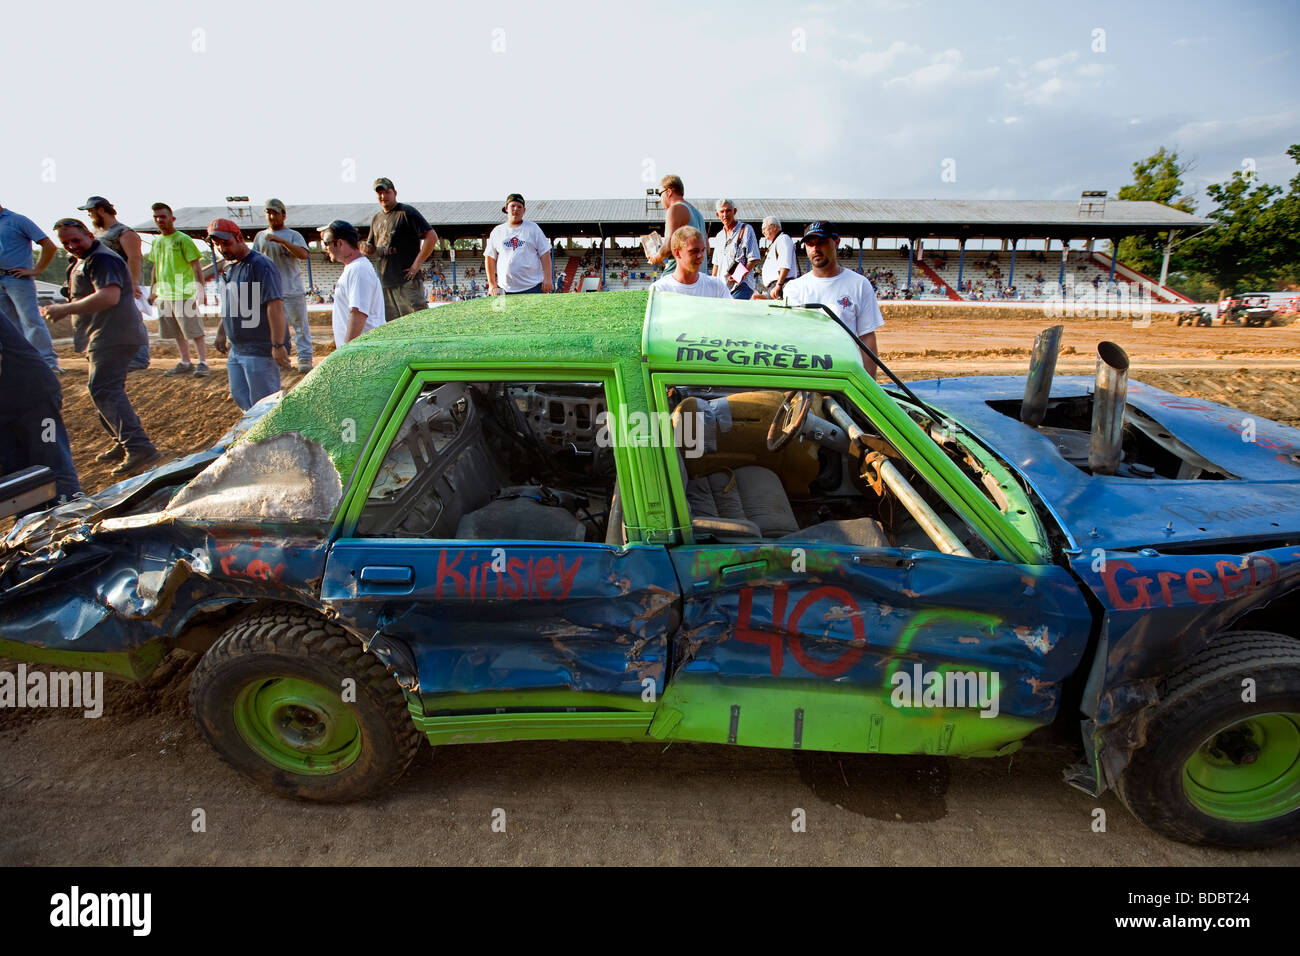 USA Tennessee Demolition derby at Putnam County Fair in Cookeville - Stock Image